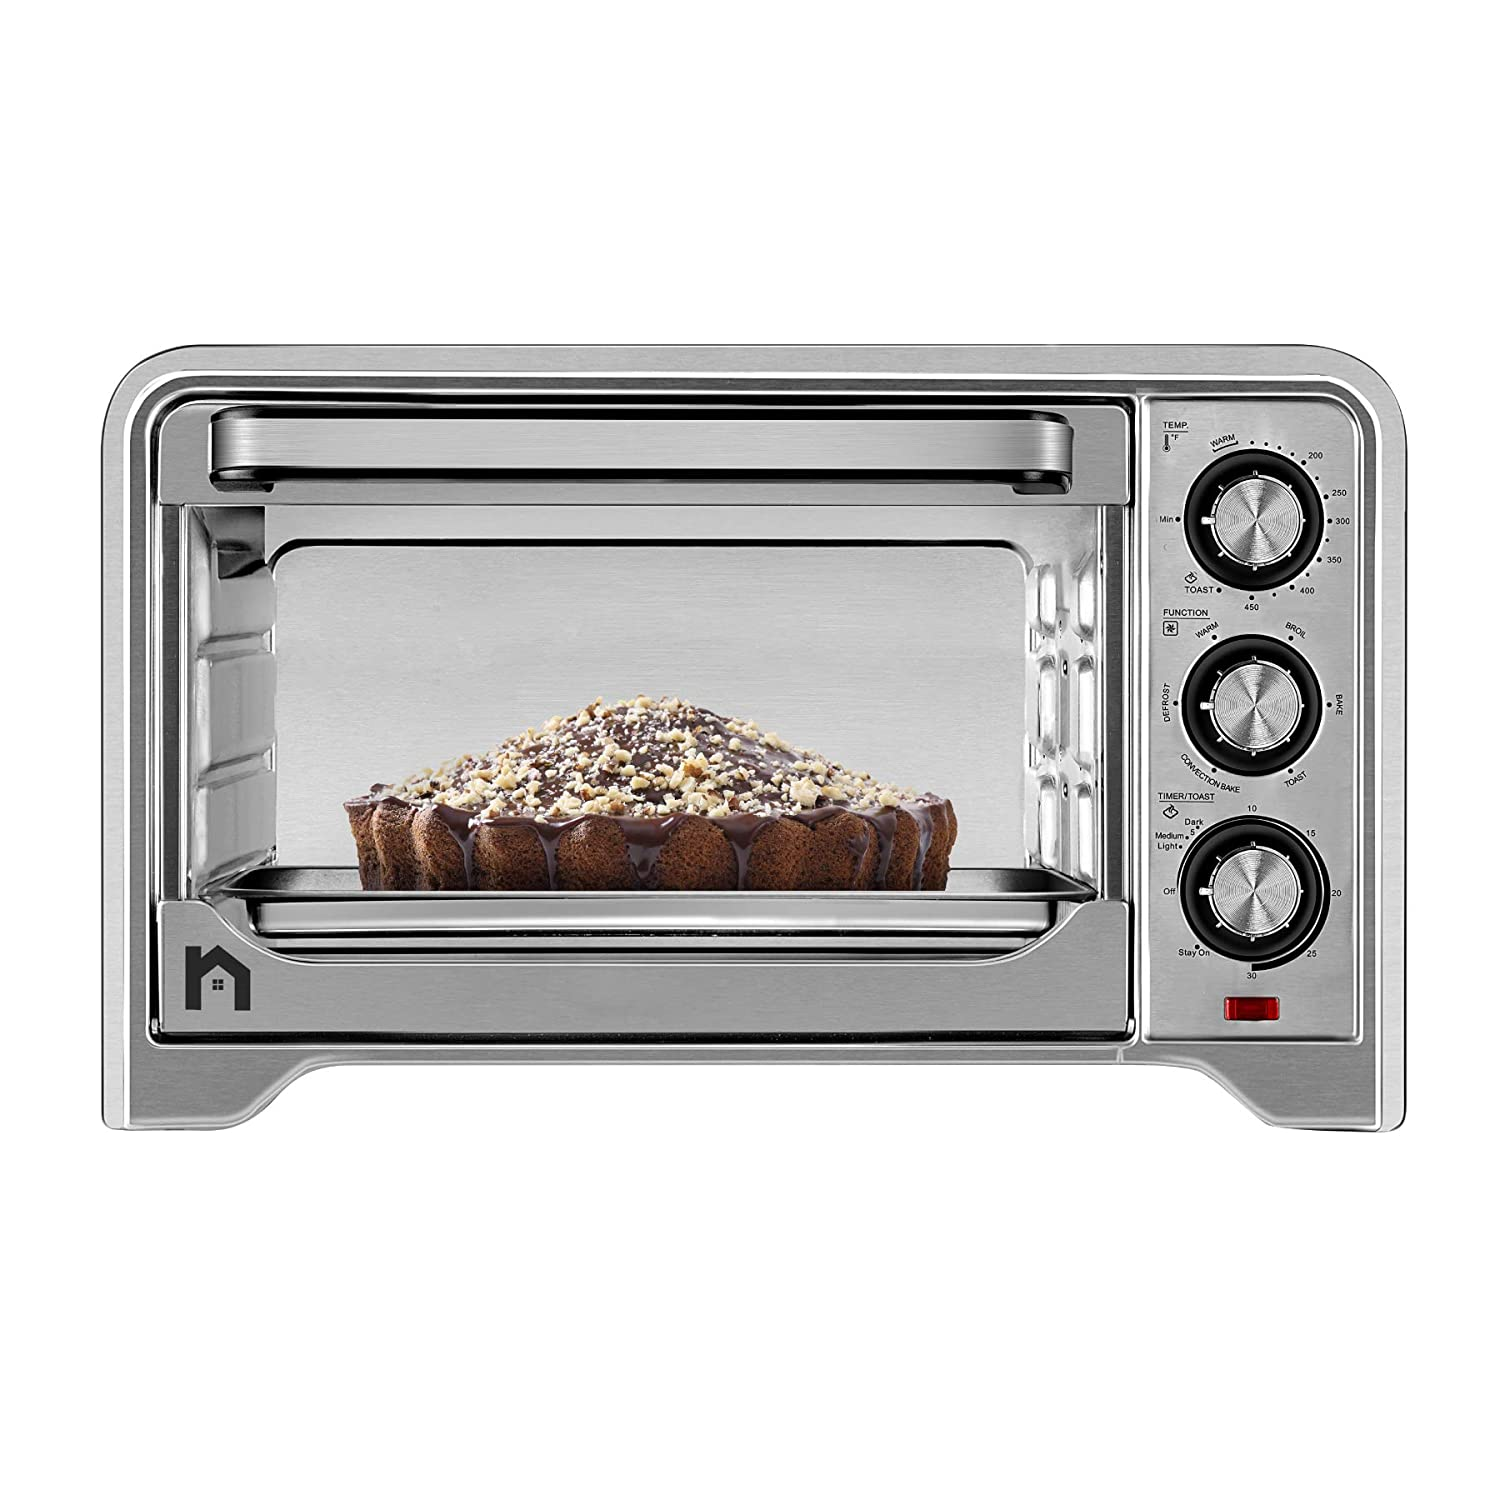 New House Kitchen Stainless Steel Toaster Countertop Convection Oven w Multiple Temperature Control, X-Large 6 Slice, 6 Cooking Functions Include Bake, Broil, Keep Warm